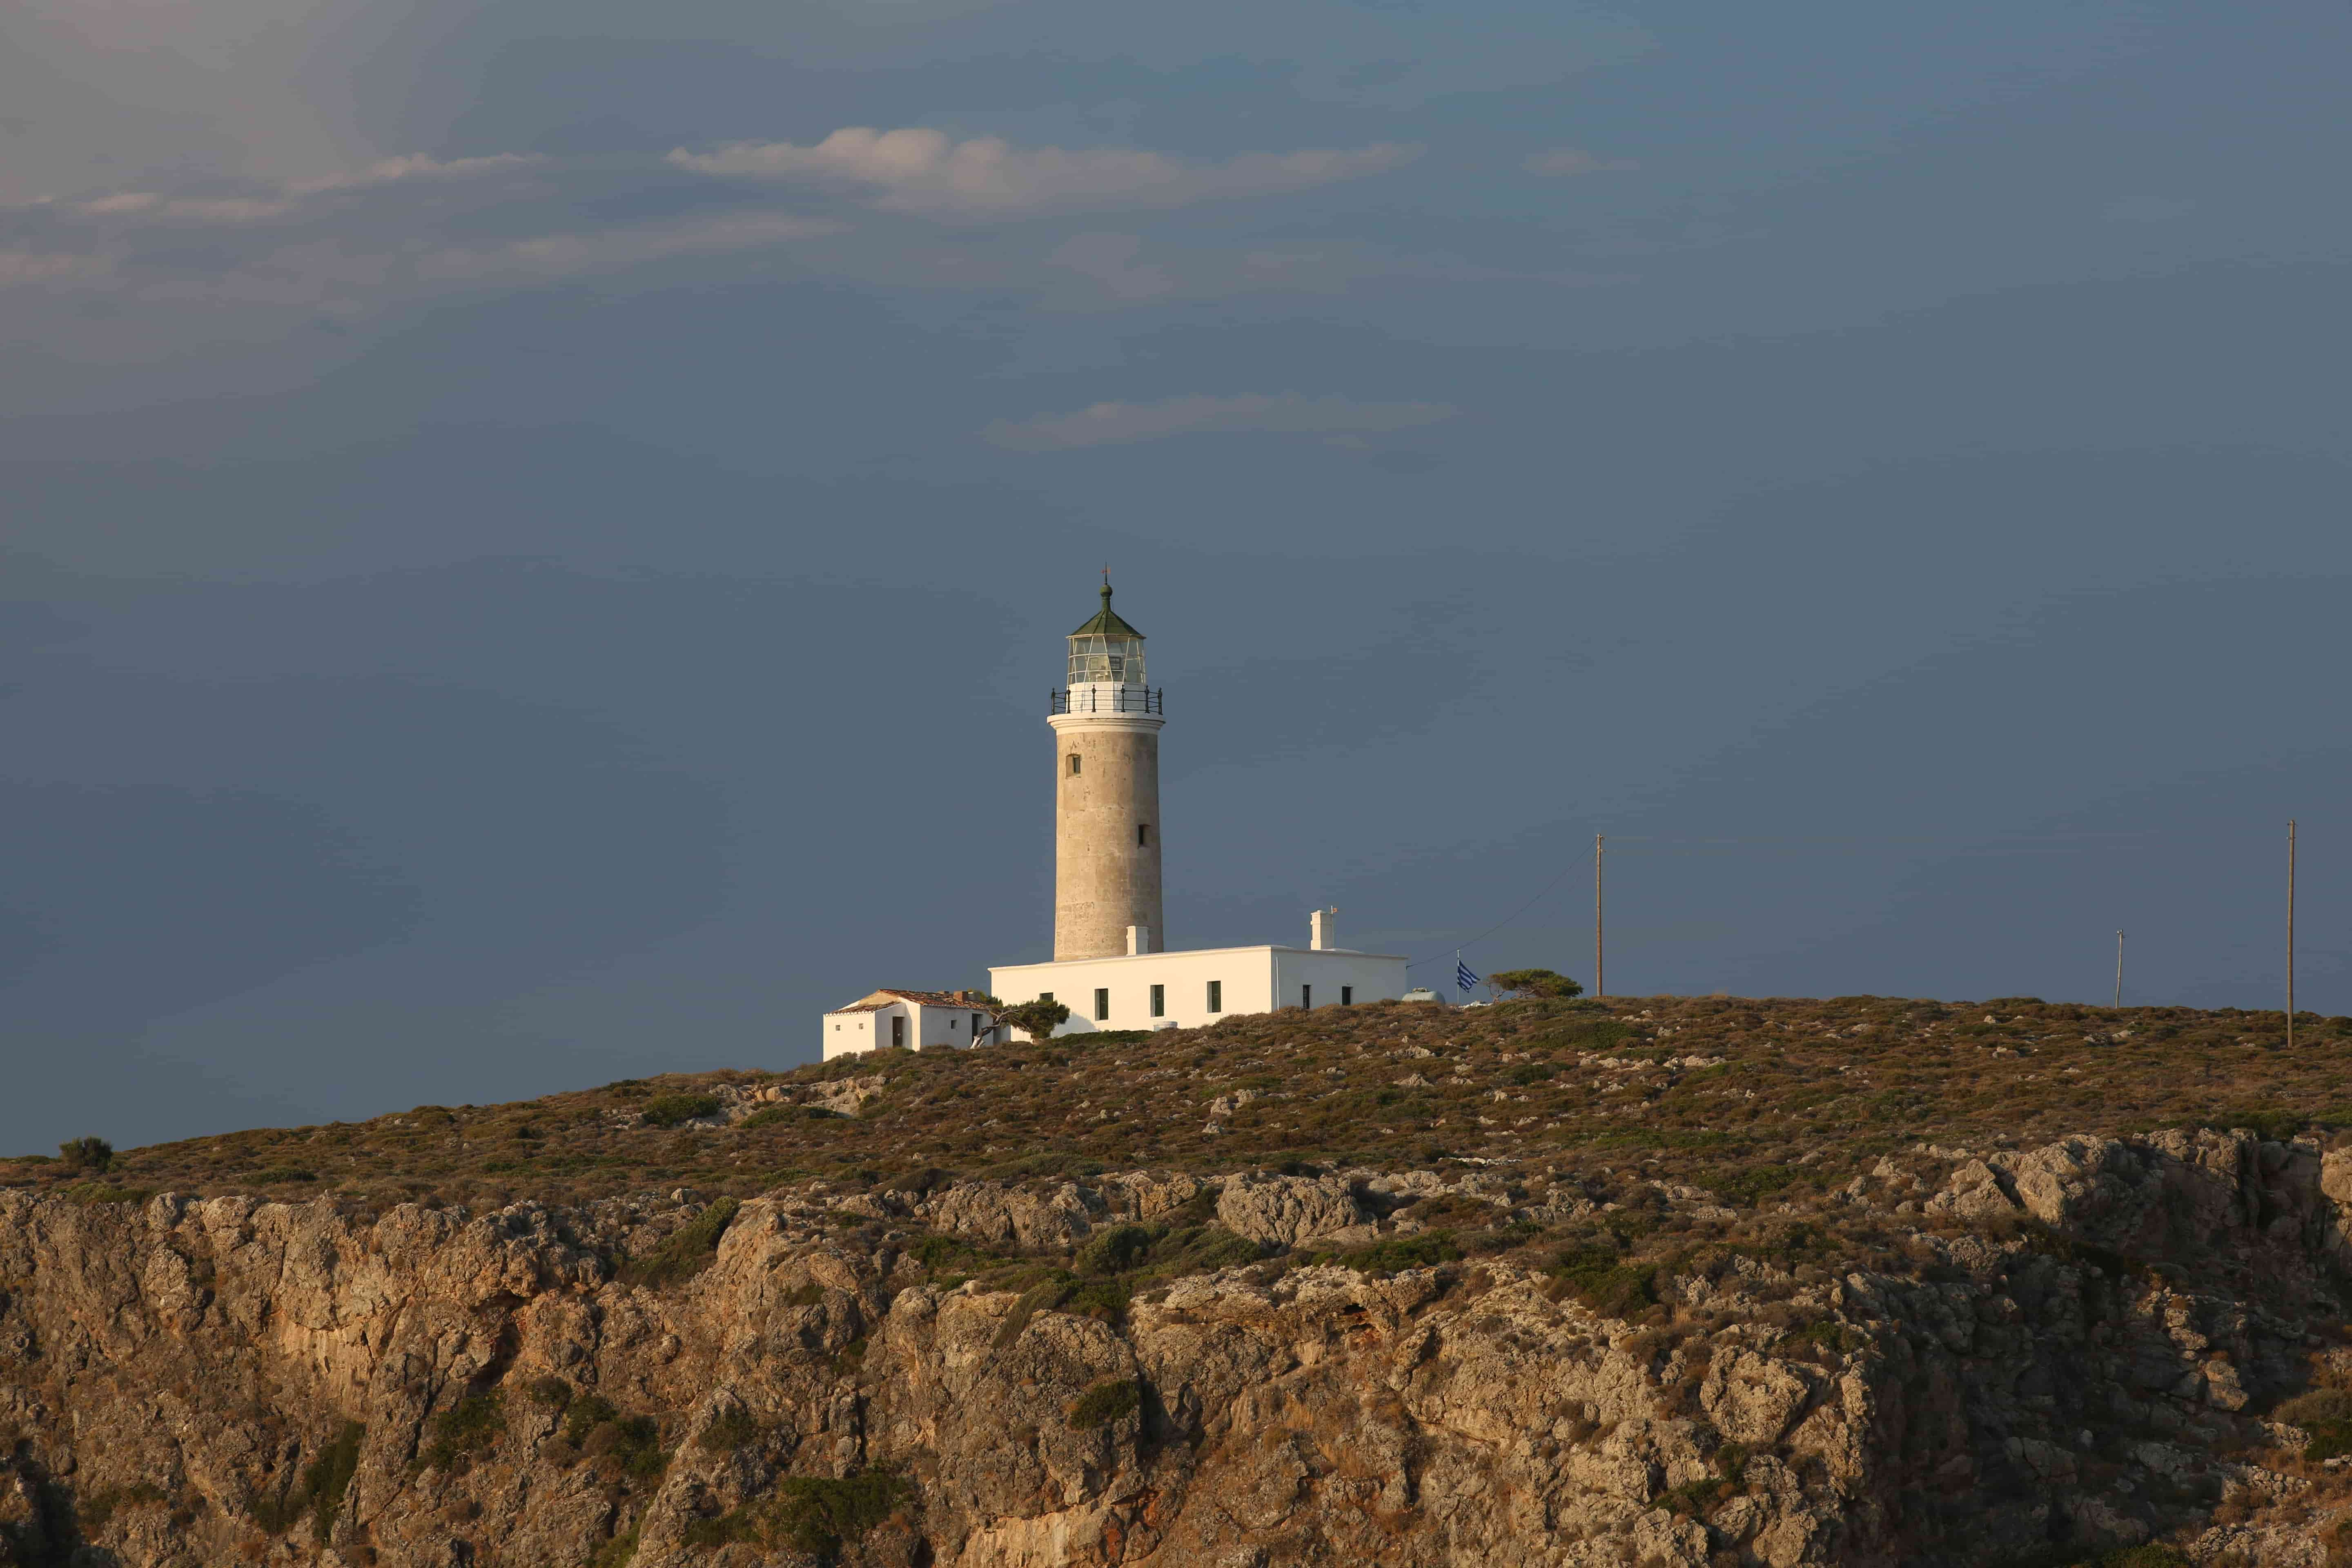 The Incredible Moudari Lighthouse